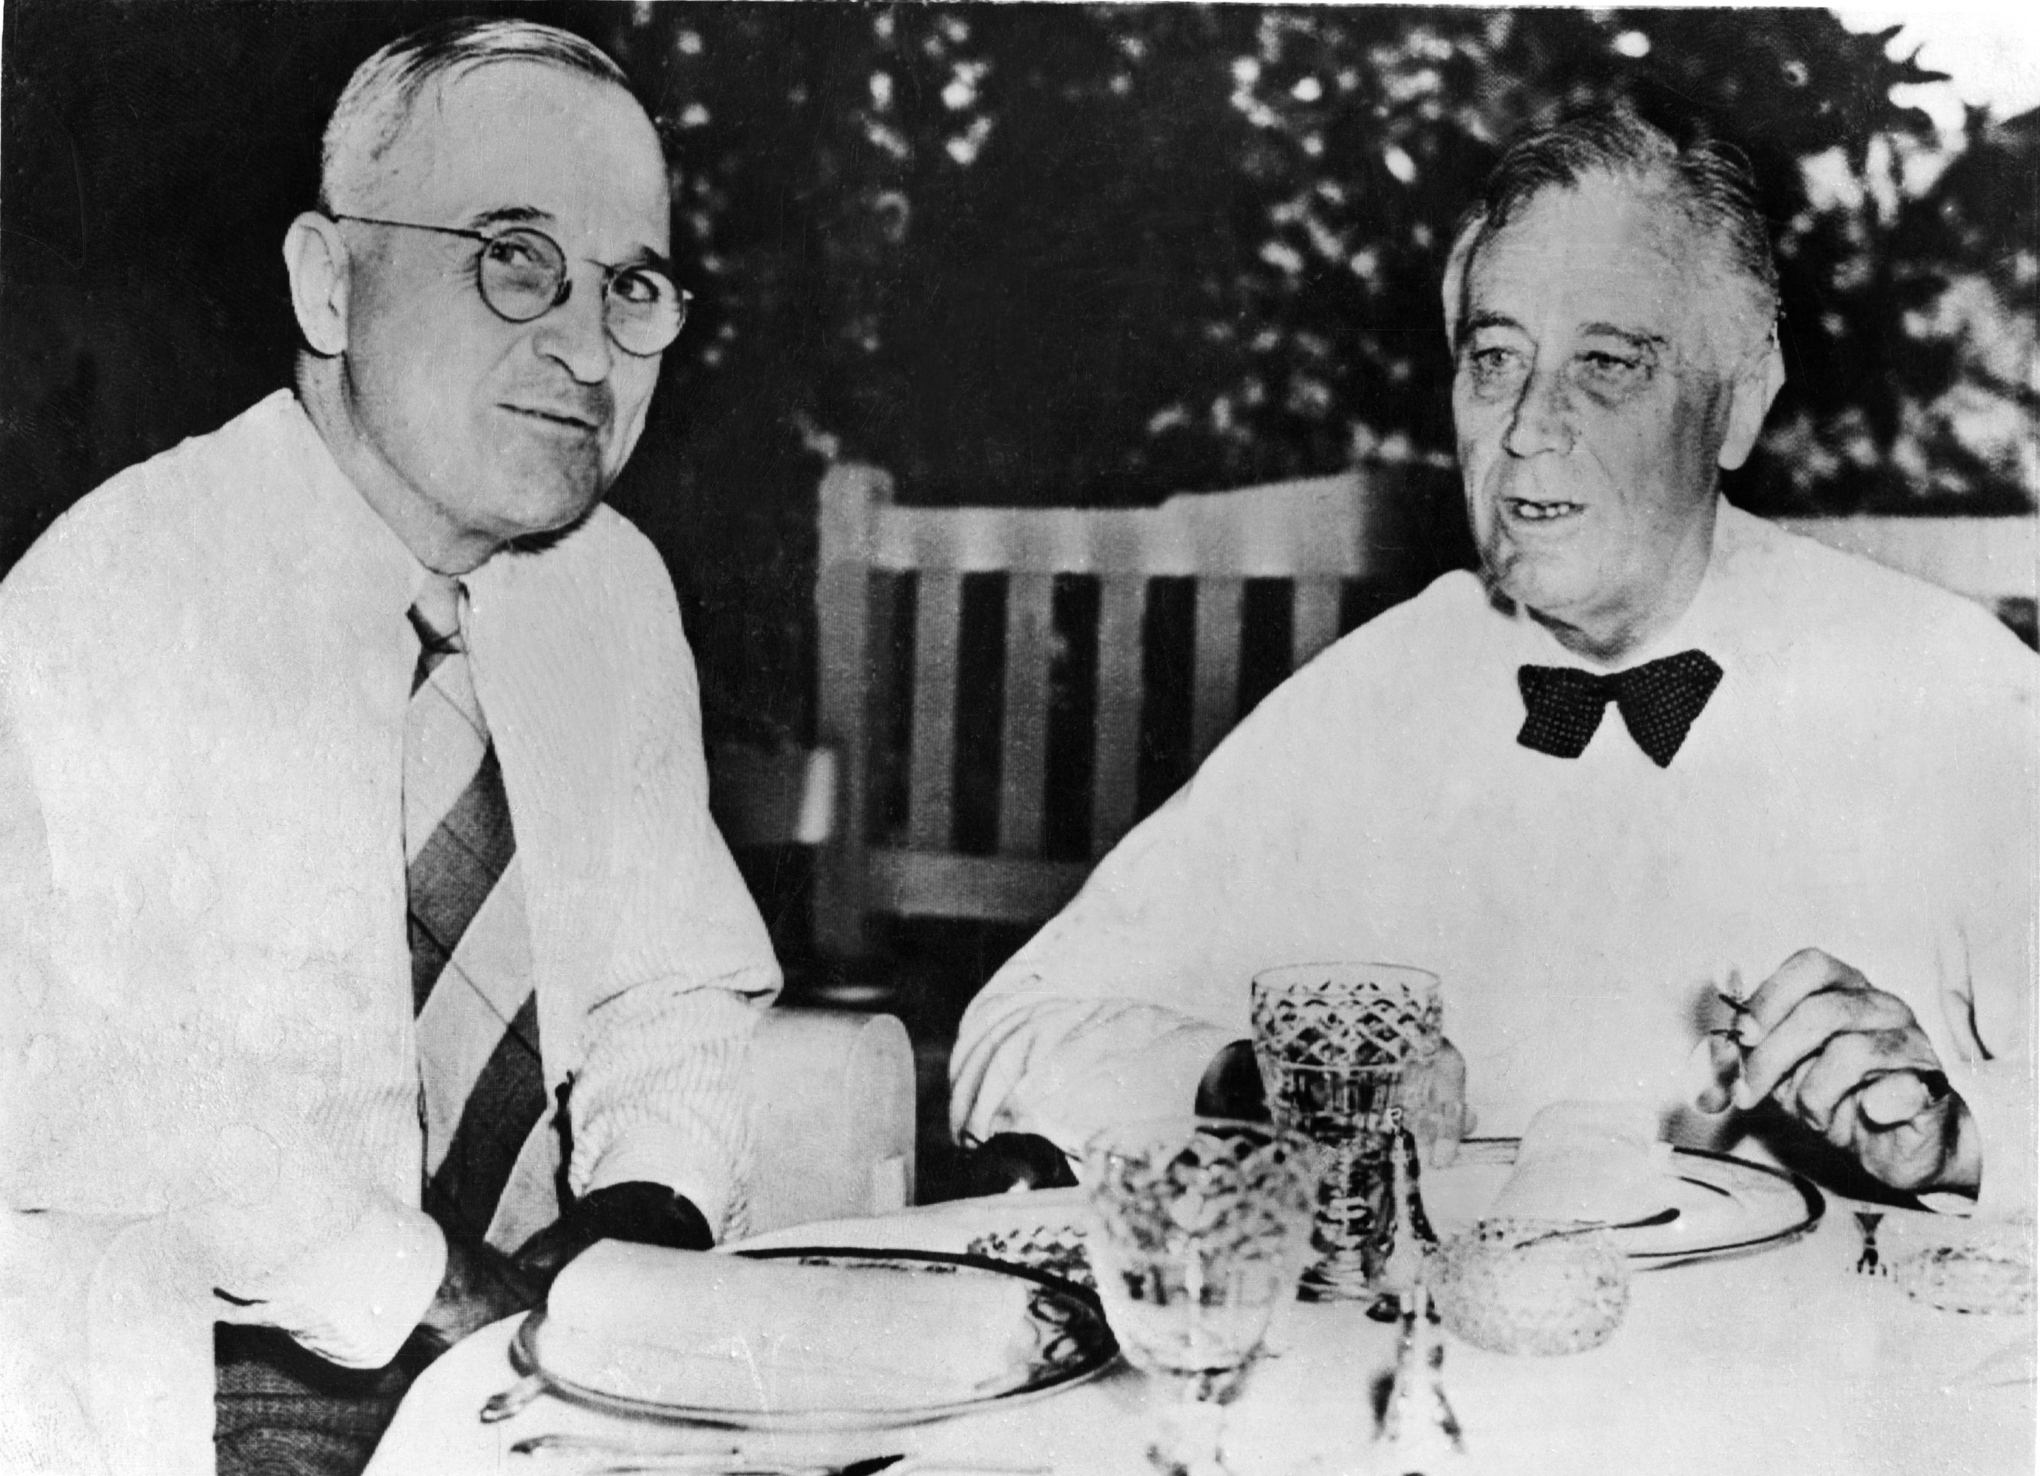 President Roosevelt and Truman